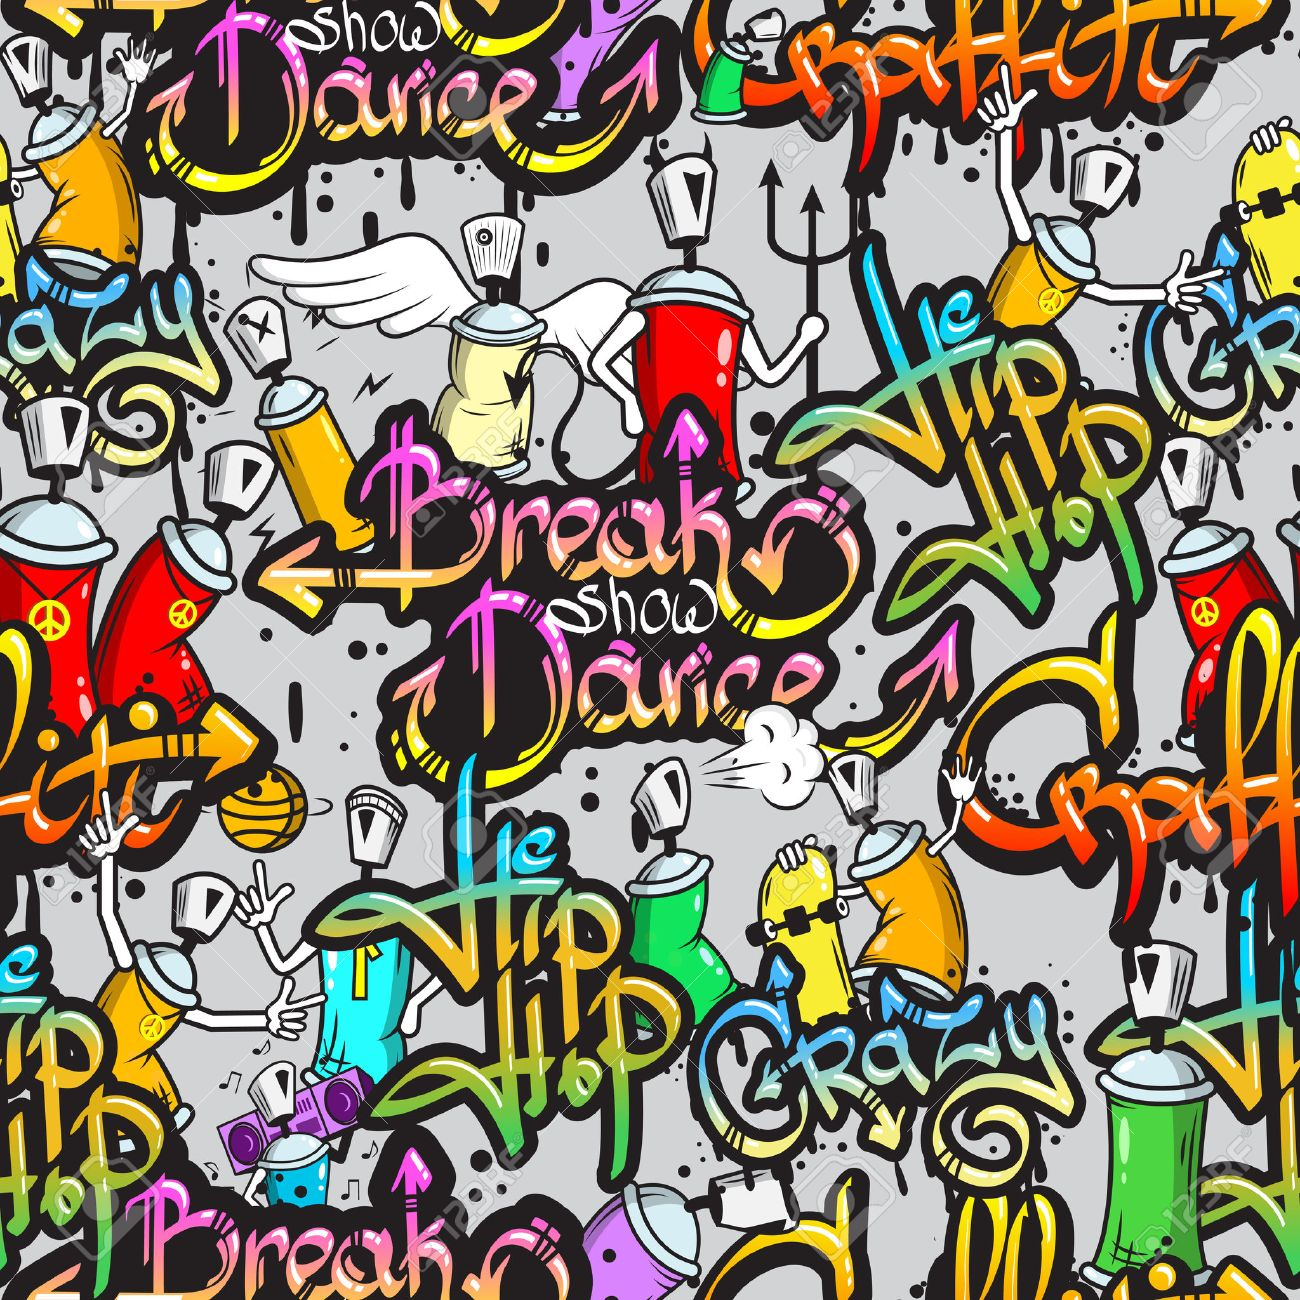 Graffiti Spray Paint Street Art Subculture Characters Letters Composition Design Seamless Colorful Pattern Sketch Grunge Vector